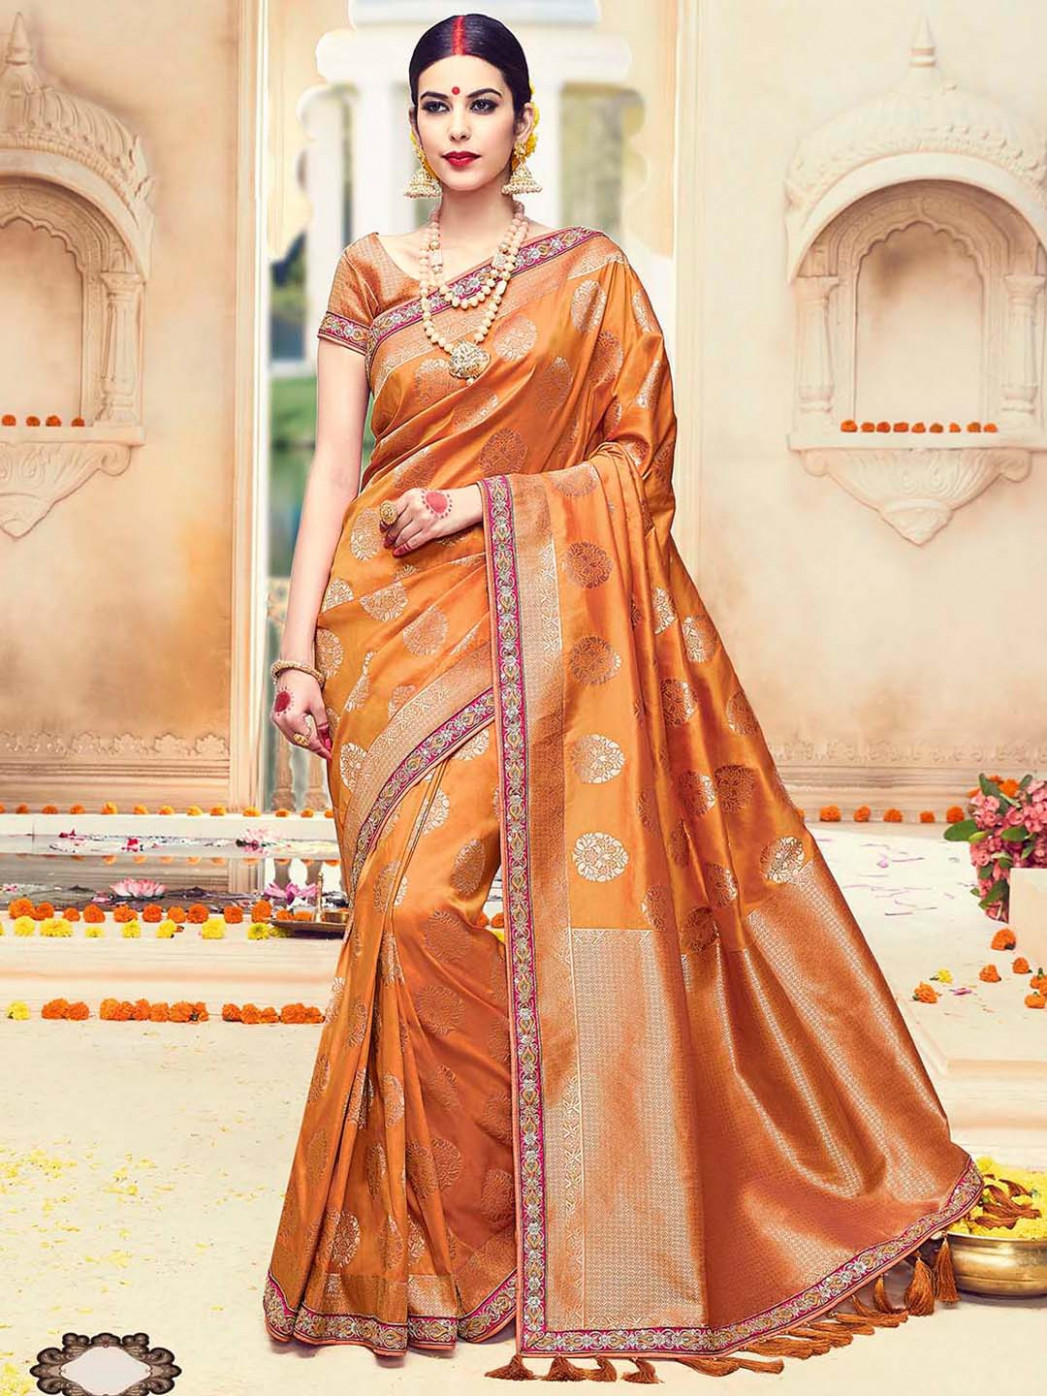 Gold wedding silk saree - G3-WSA17779  G3fashion.com